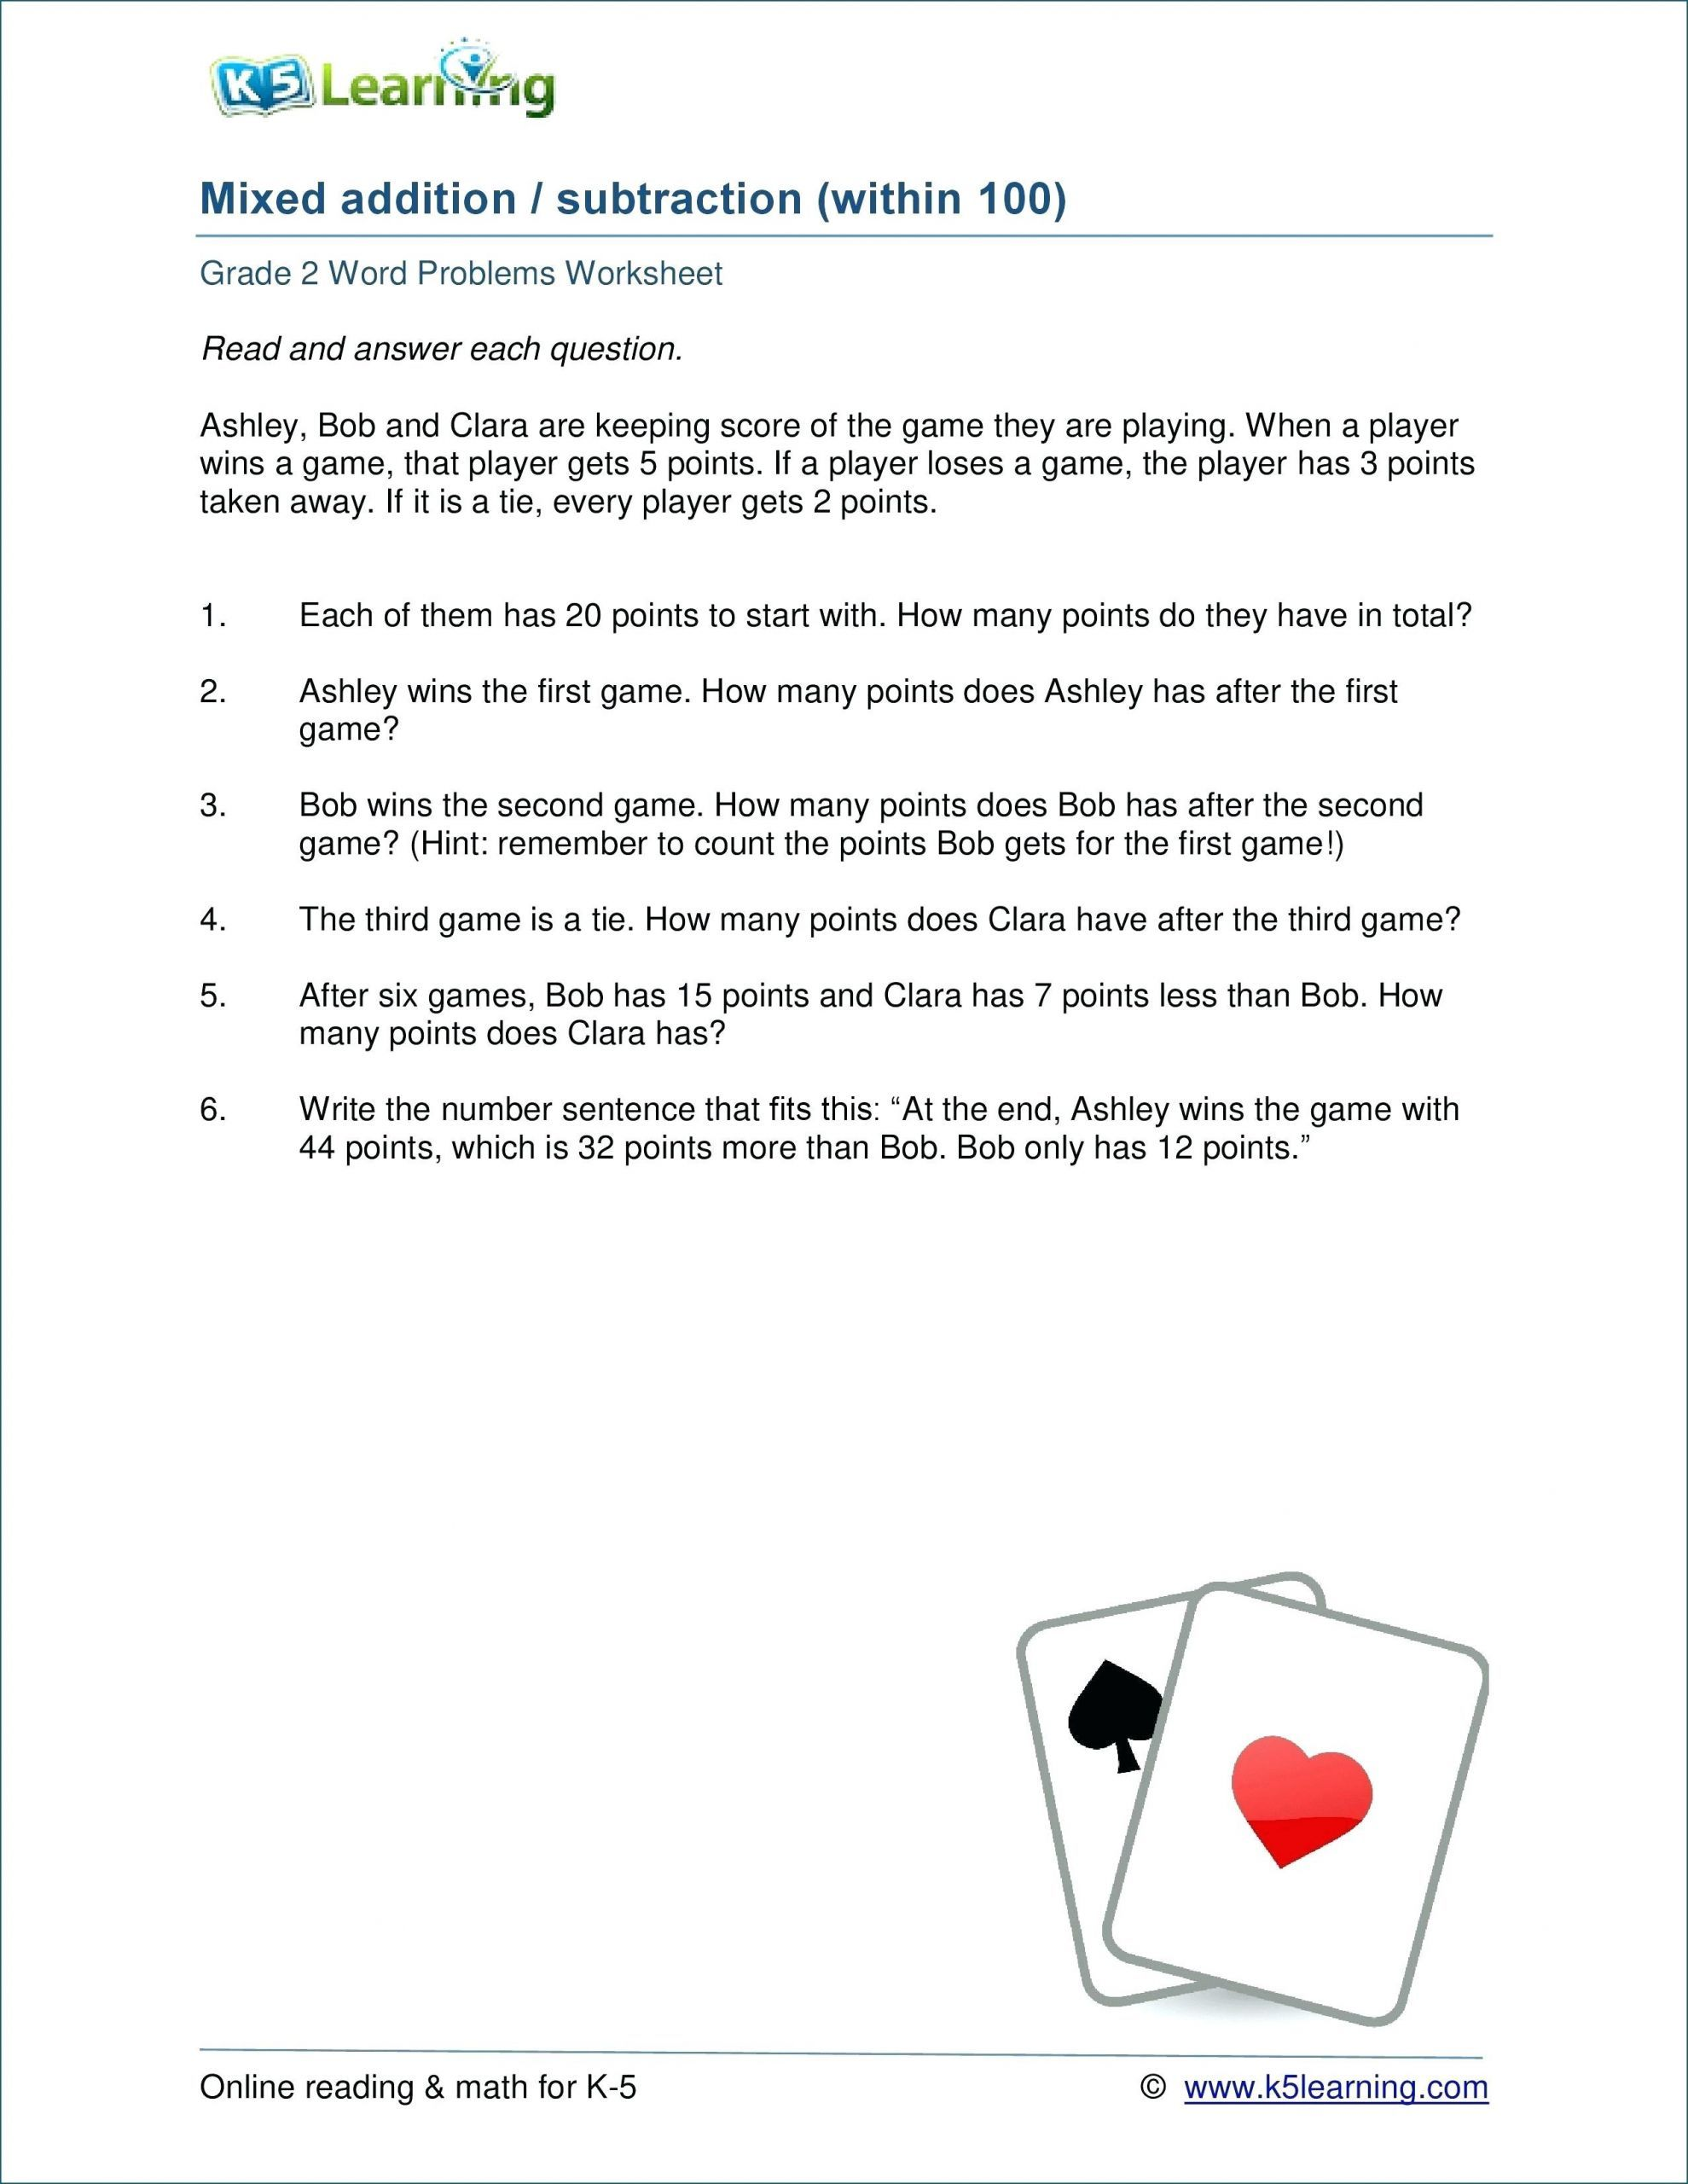 4 Free Math Worksheets Second Grade 2 Subtraction Subtract 3 Digit Numbers With Regrouping Ma In 2020 Math Word Problems Word Problem Worksheets Word Problems